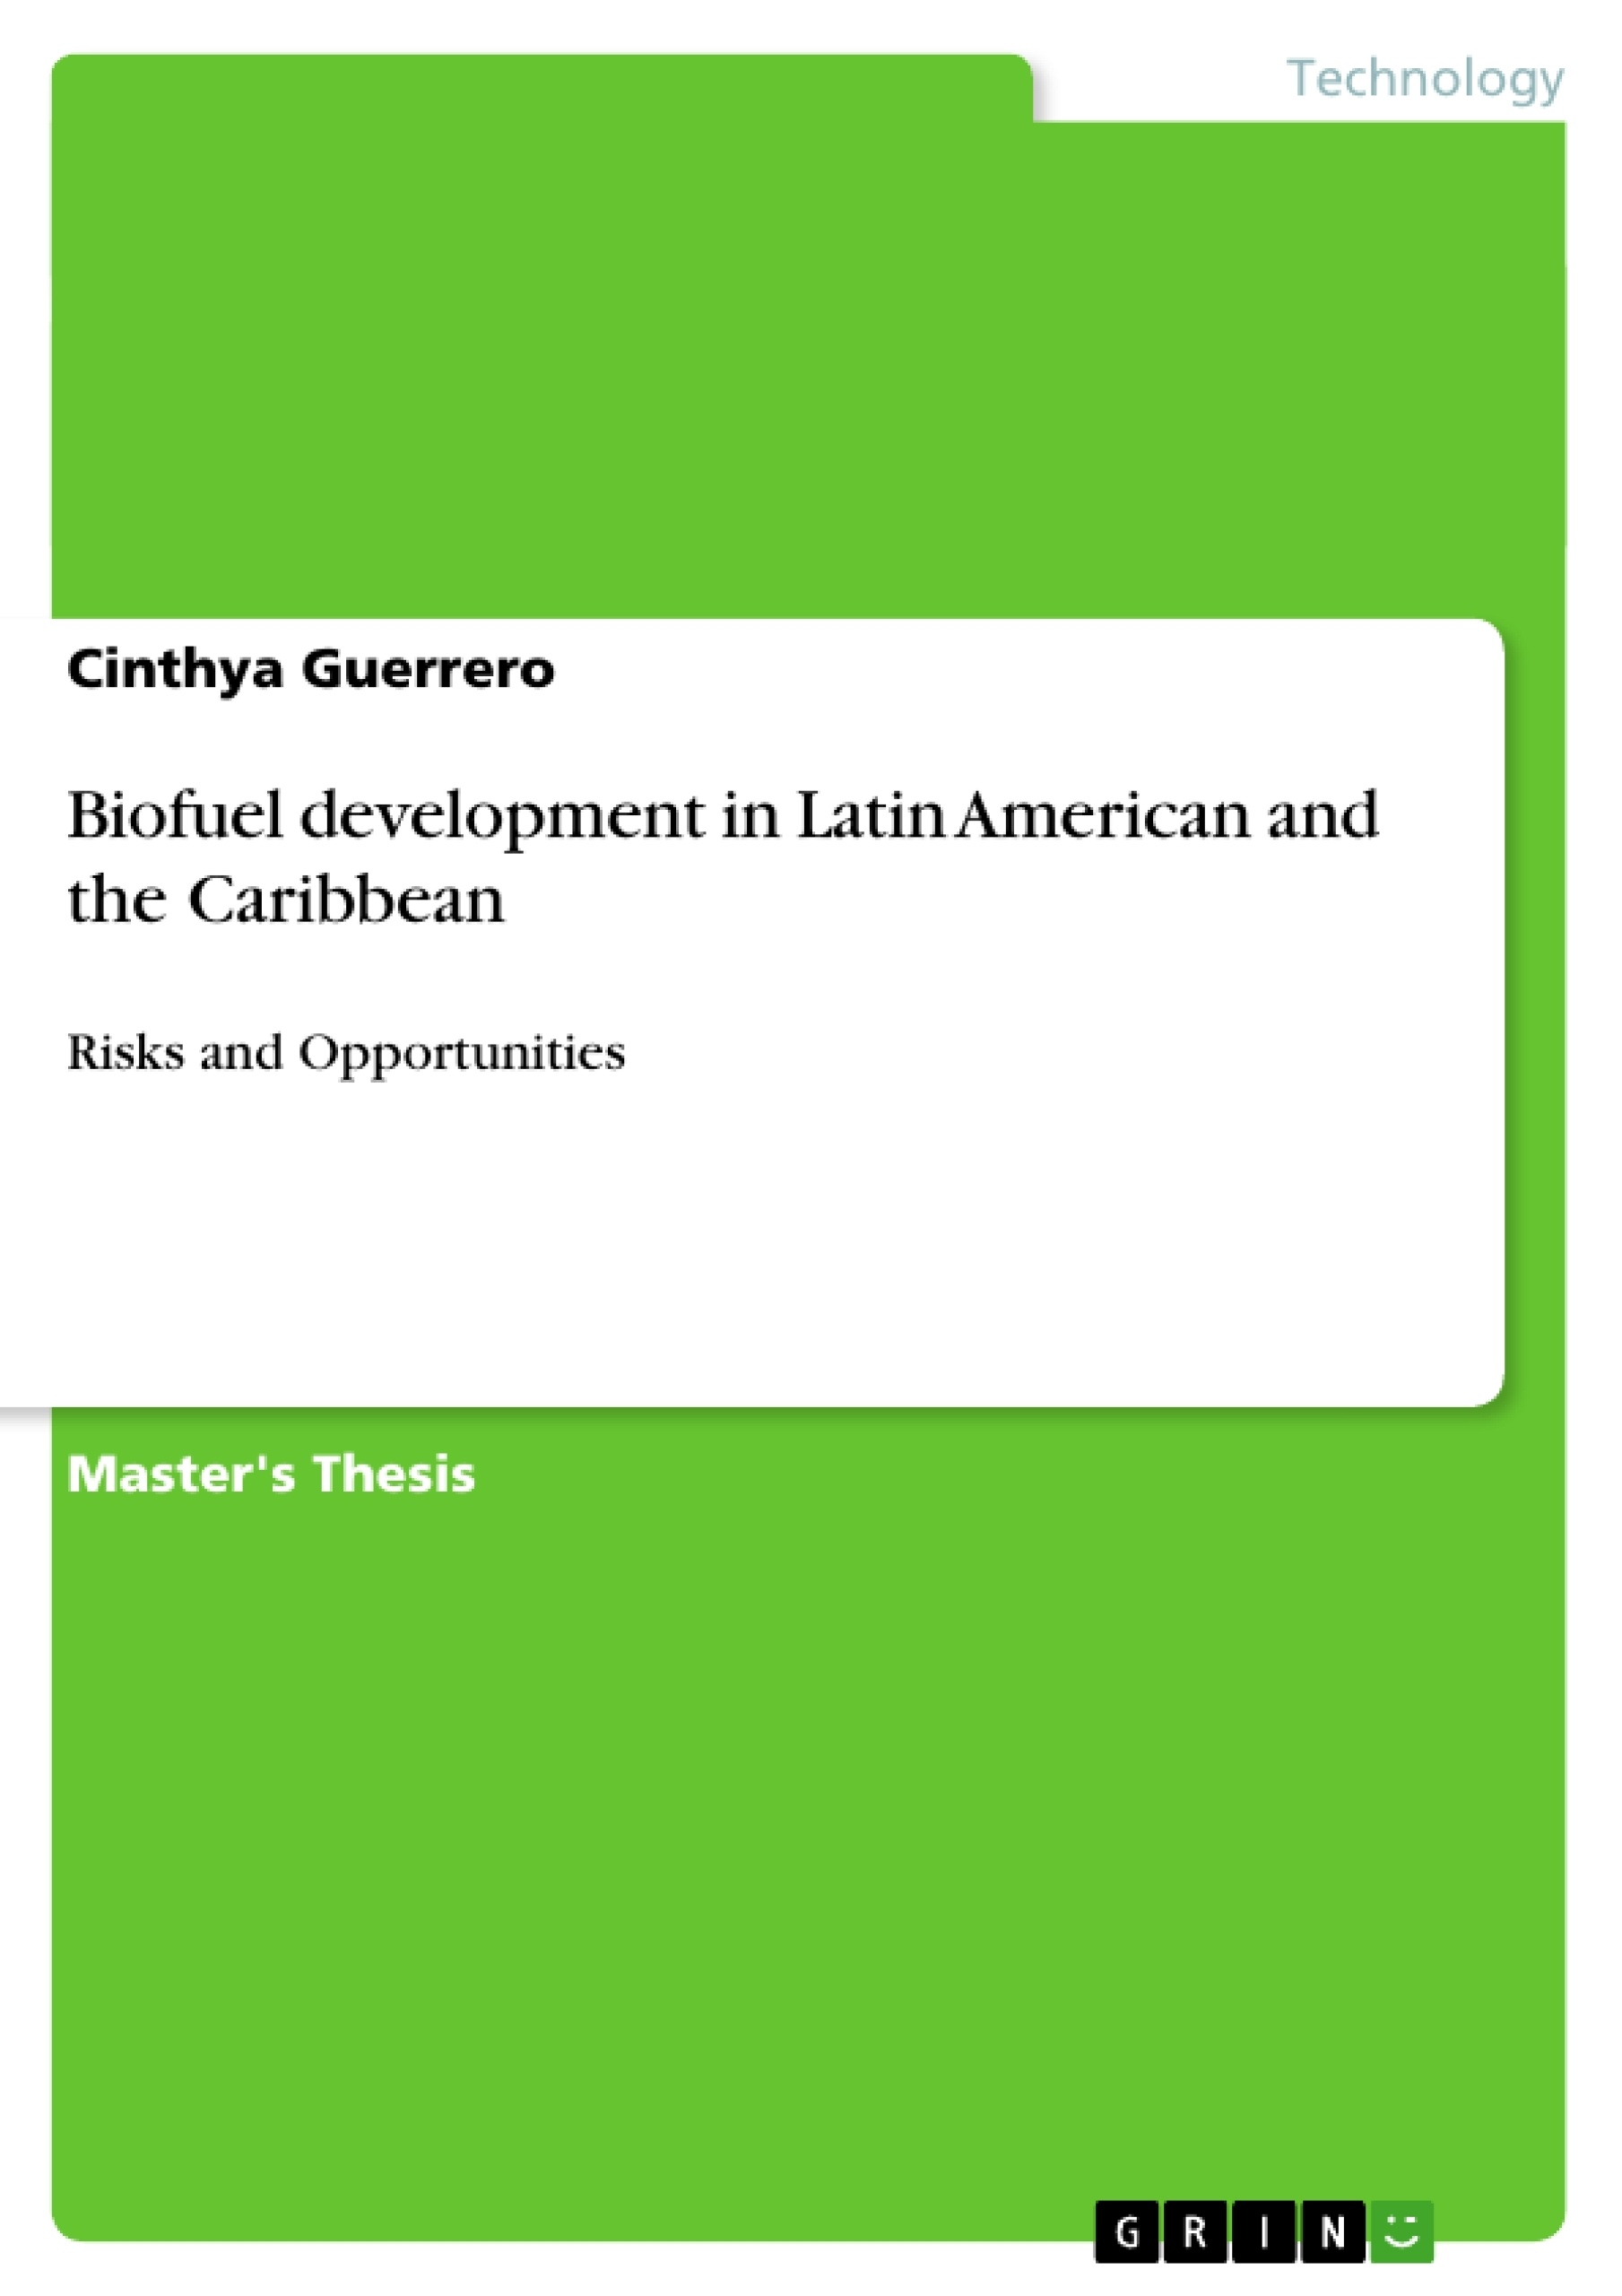 Title: Biofuel development in Latin American and the Caribbean